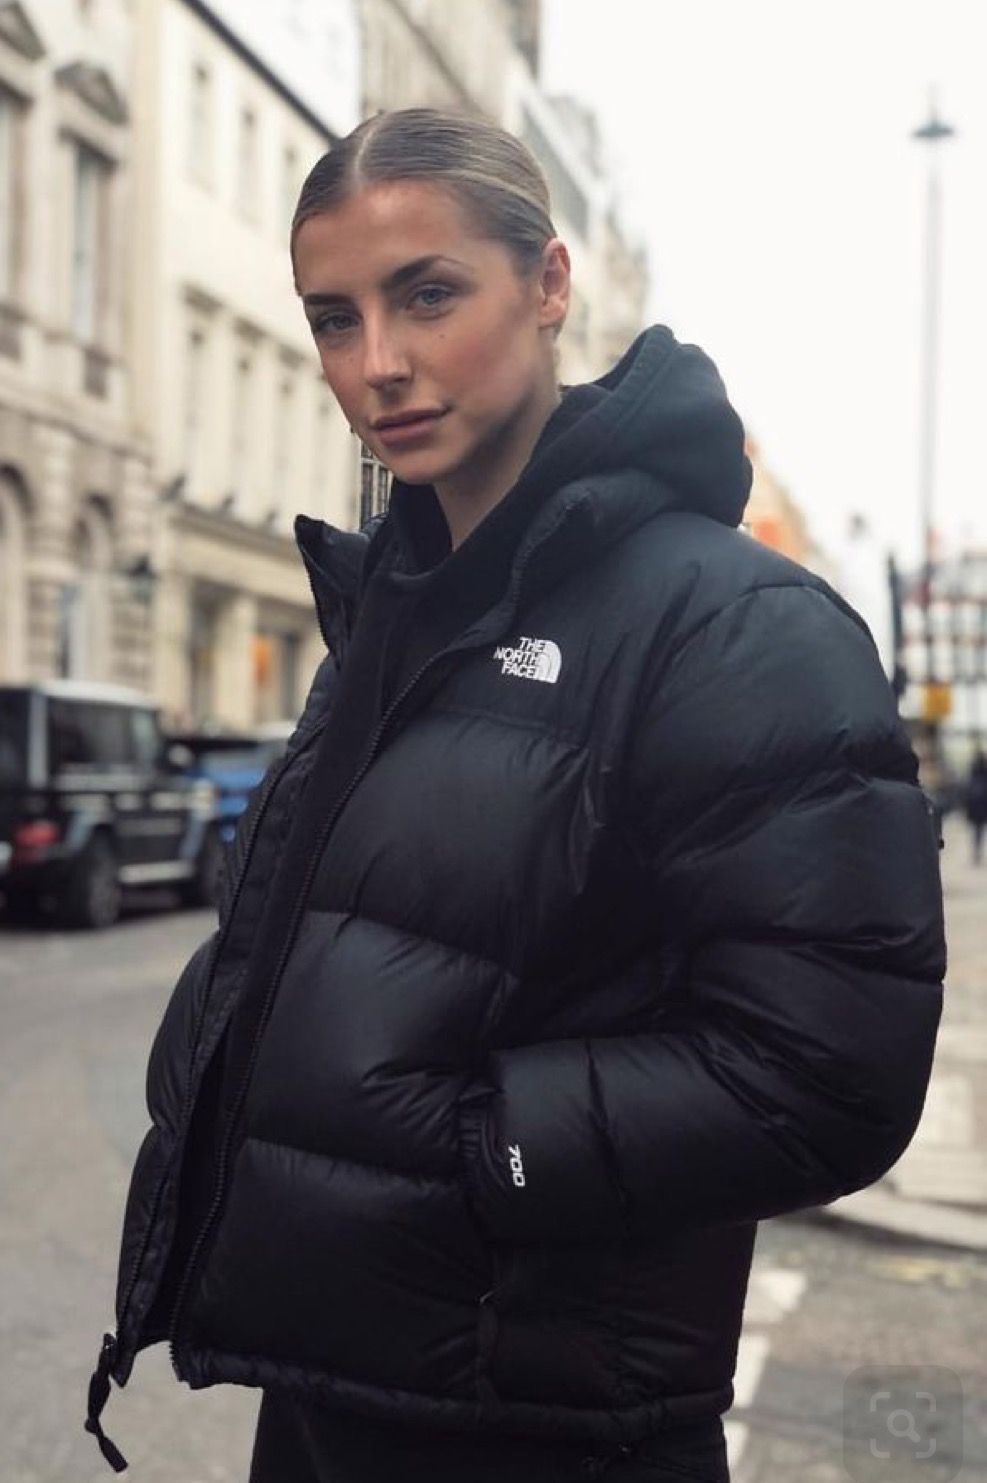 All Black Outfit North Face Jacket Outfit North Face Puffer Jacket Outfit North Face Puffer Jacket [ 1483 x 987 Pixel ]